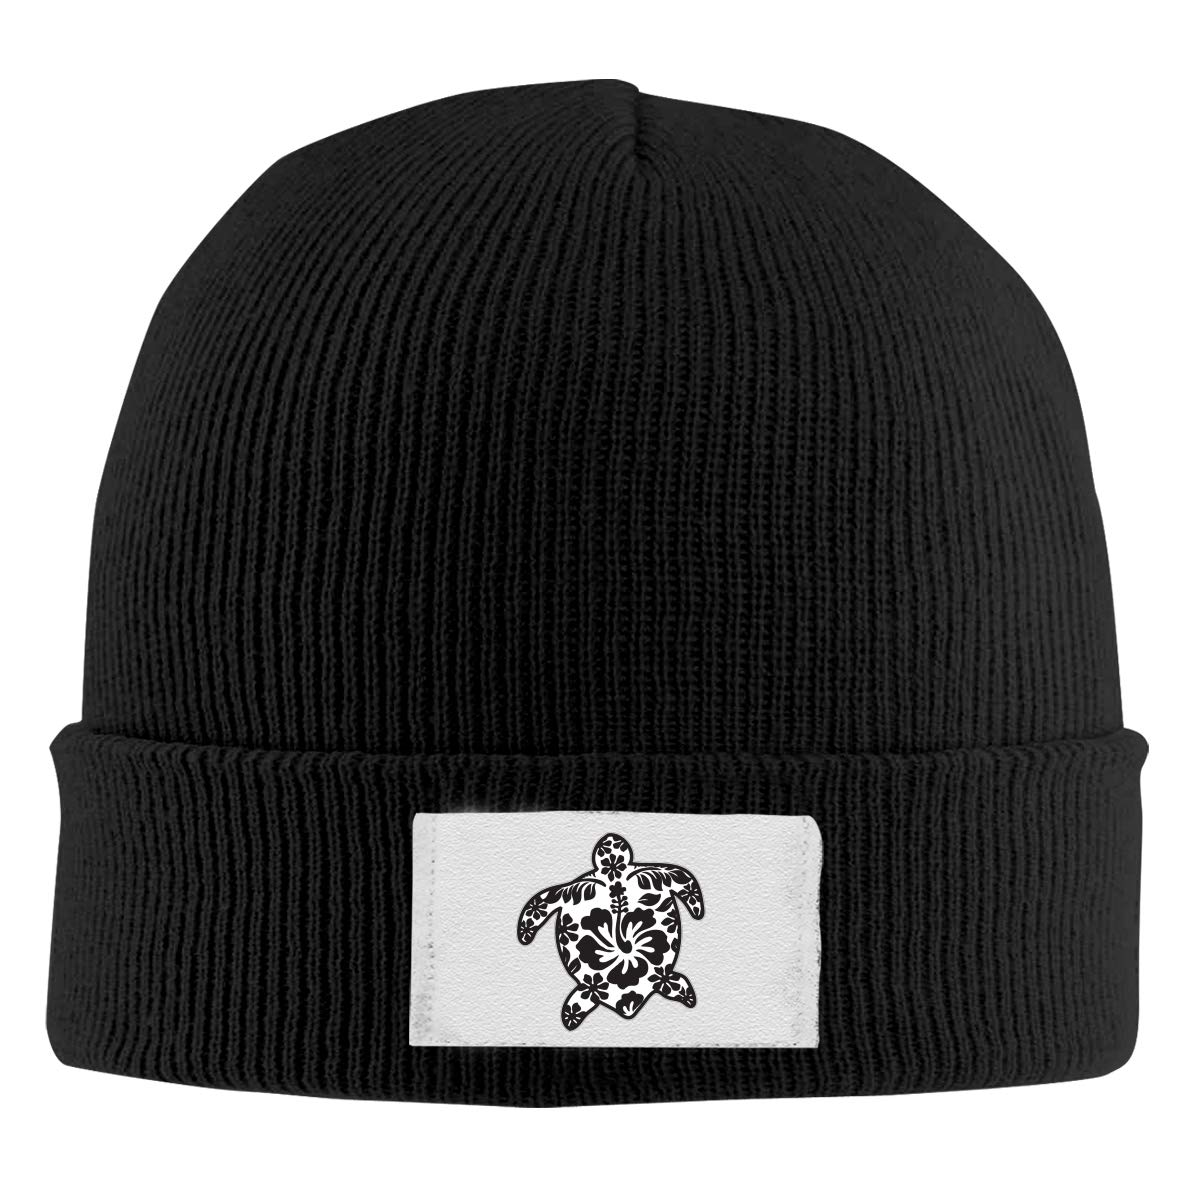 Stretchy Cuff Beanie Hat Black Dunpaiaa Skull Caps Tribal Turtle with Hibiscus Flowers Winter Warm Knit Hats